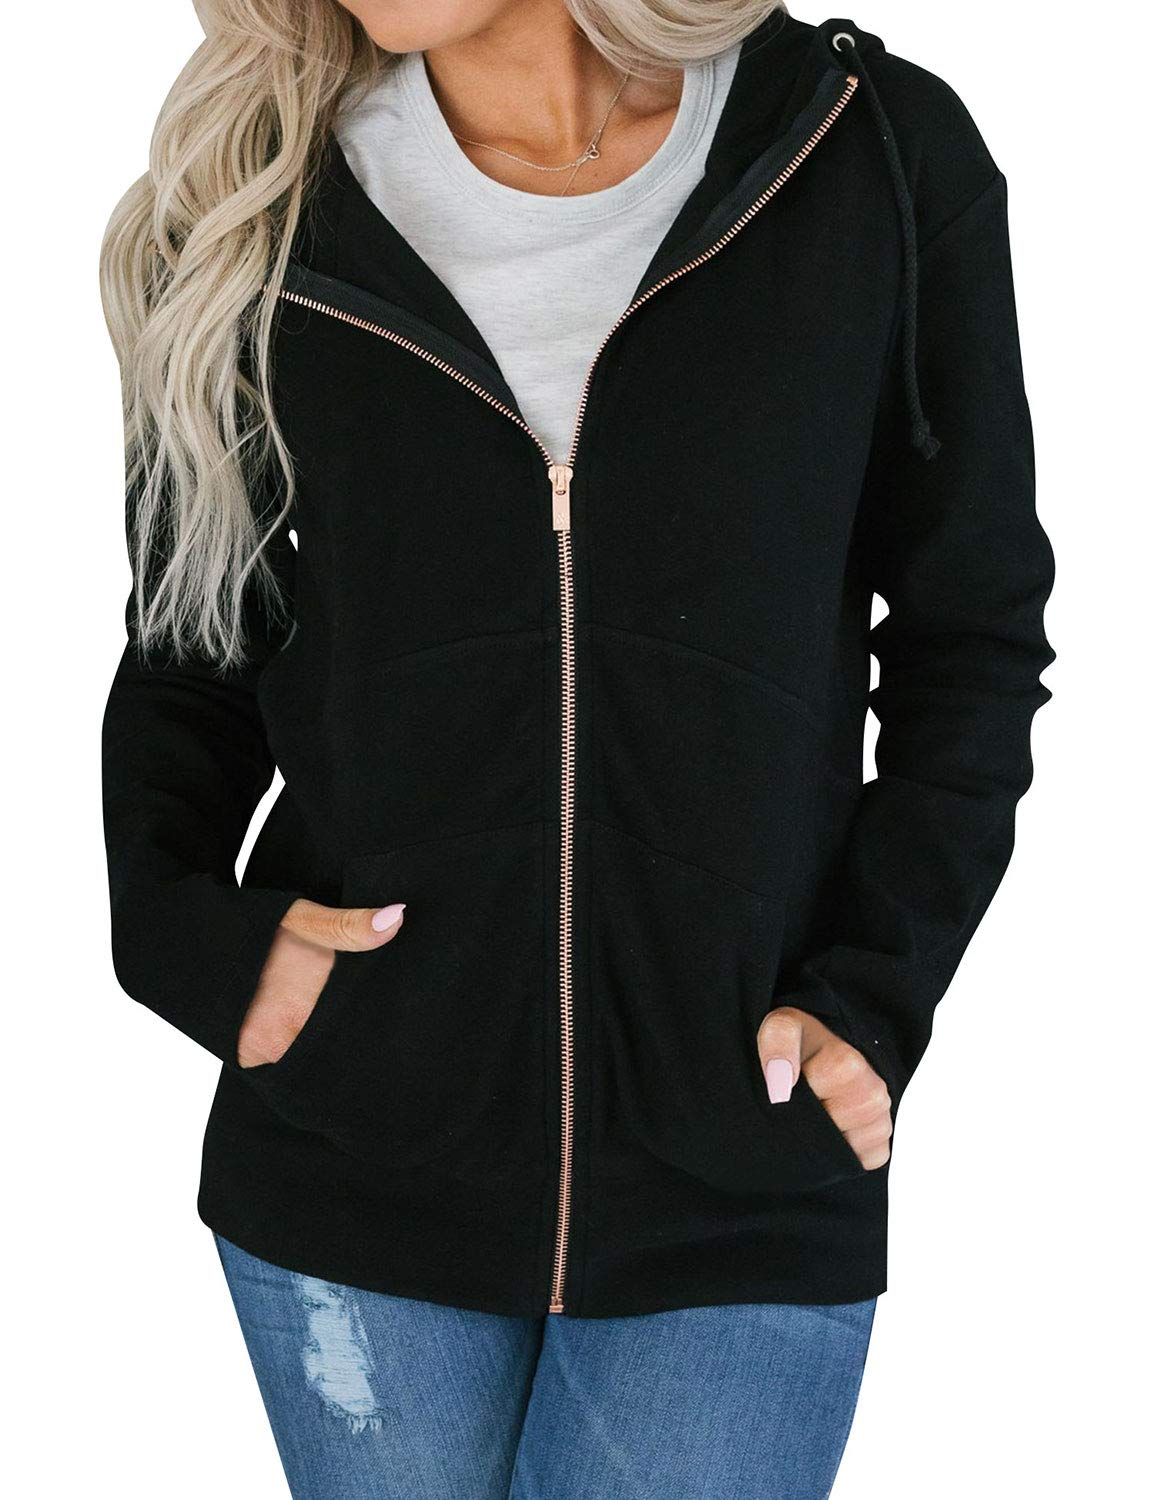 Nlife Women Solid Color Hooded Sweatershirts Long Sleeve Full Zip Top Outwear Coats